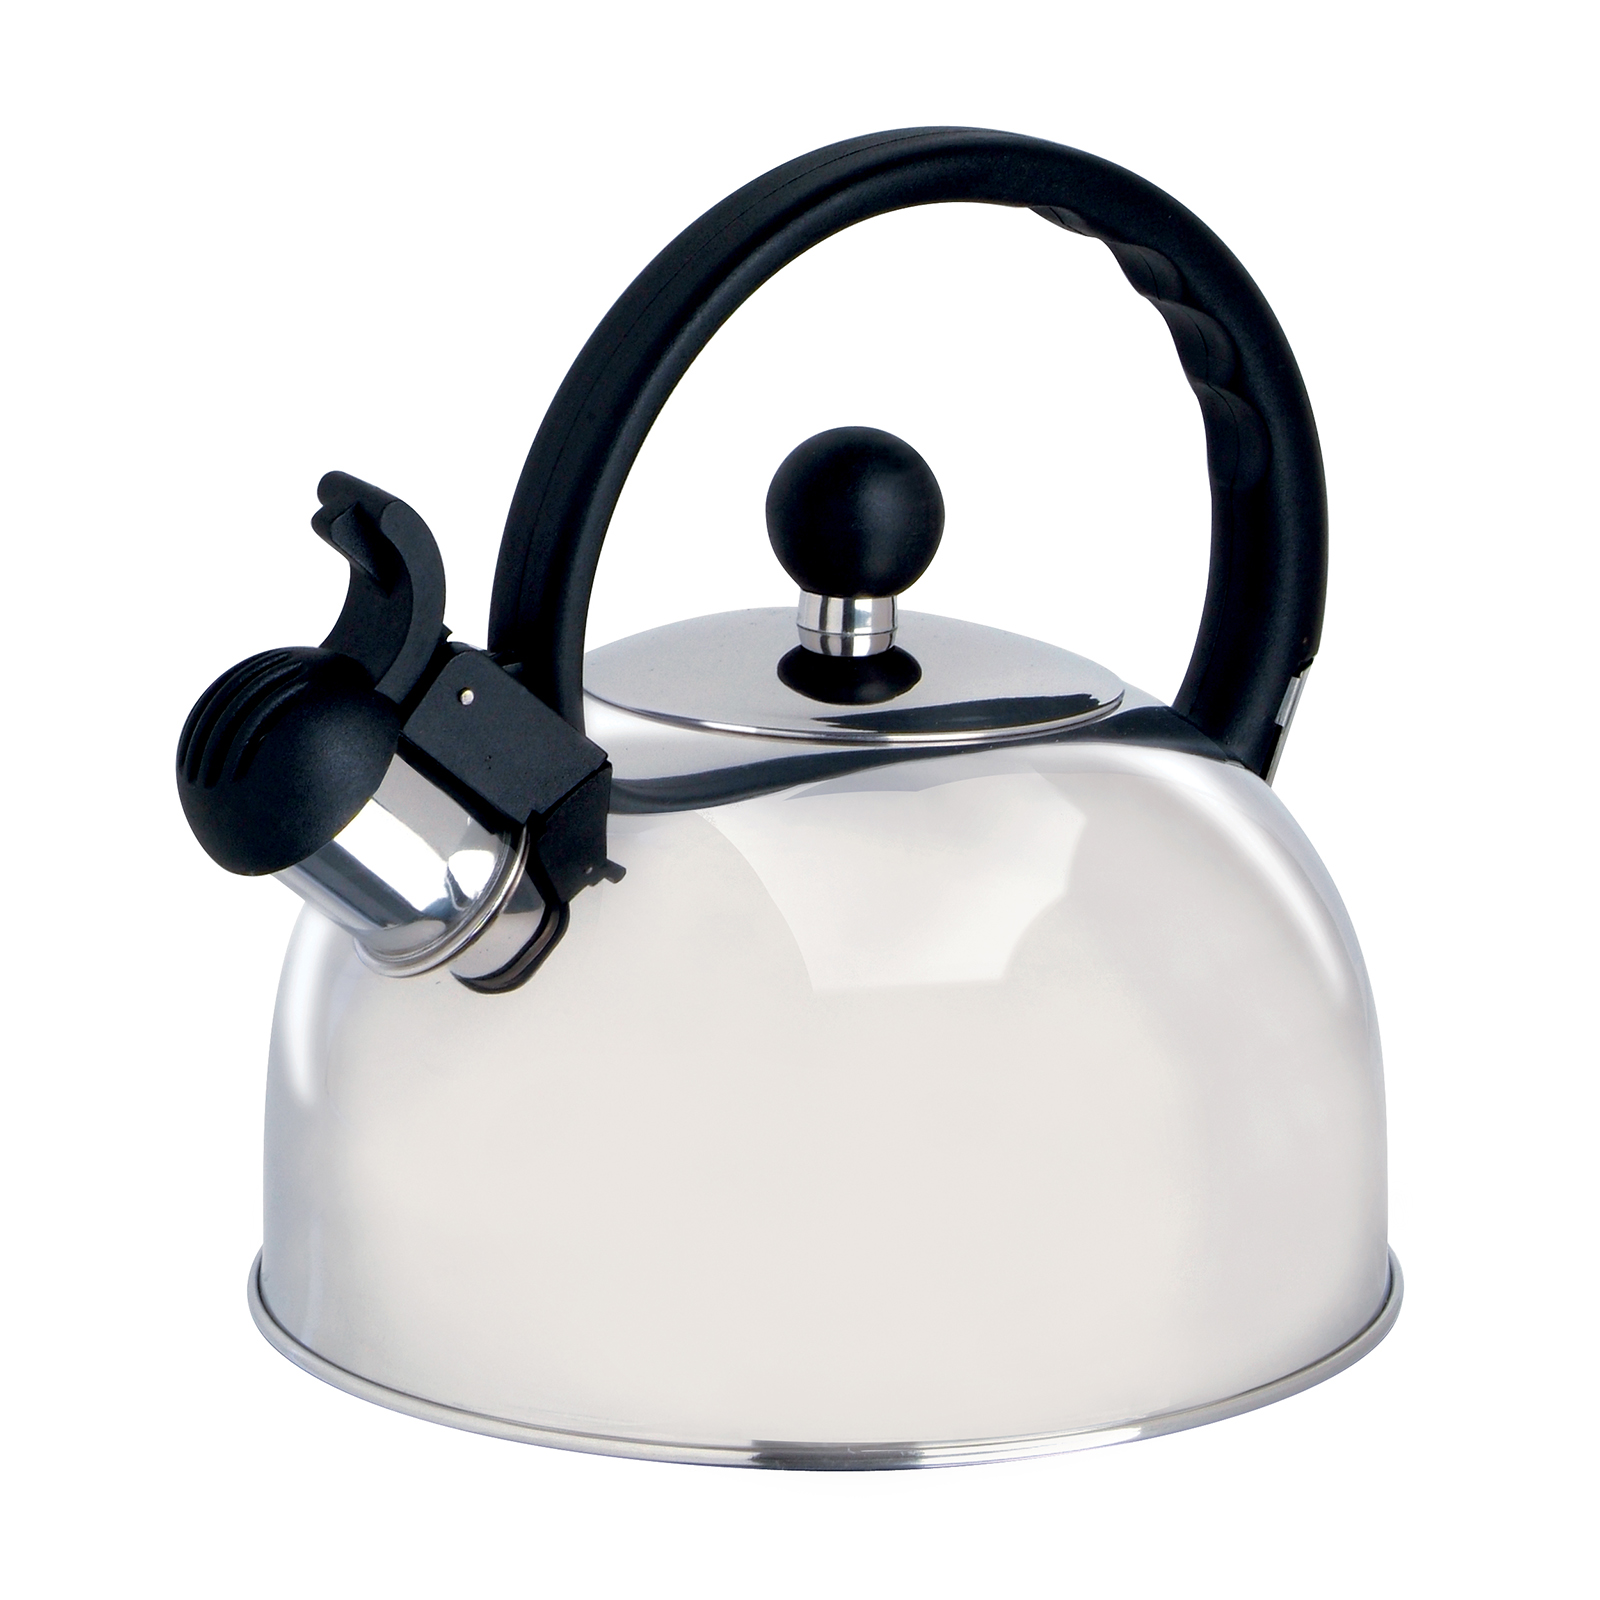 Gibson Home Springberry 2.25 Qt. Stainless Steel Kettle